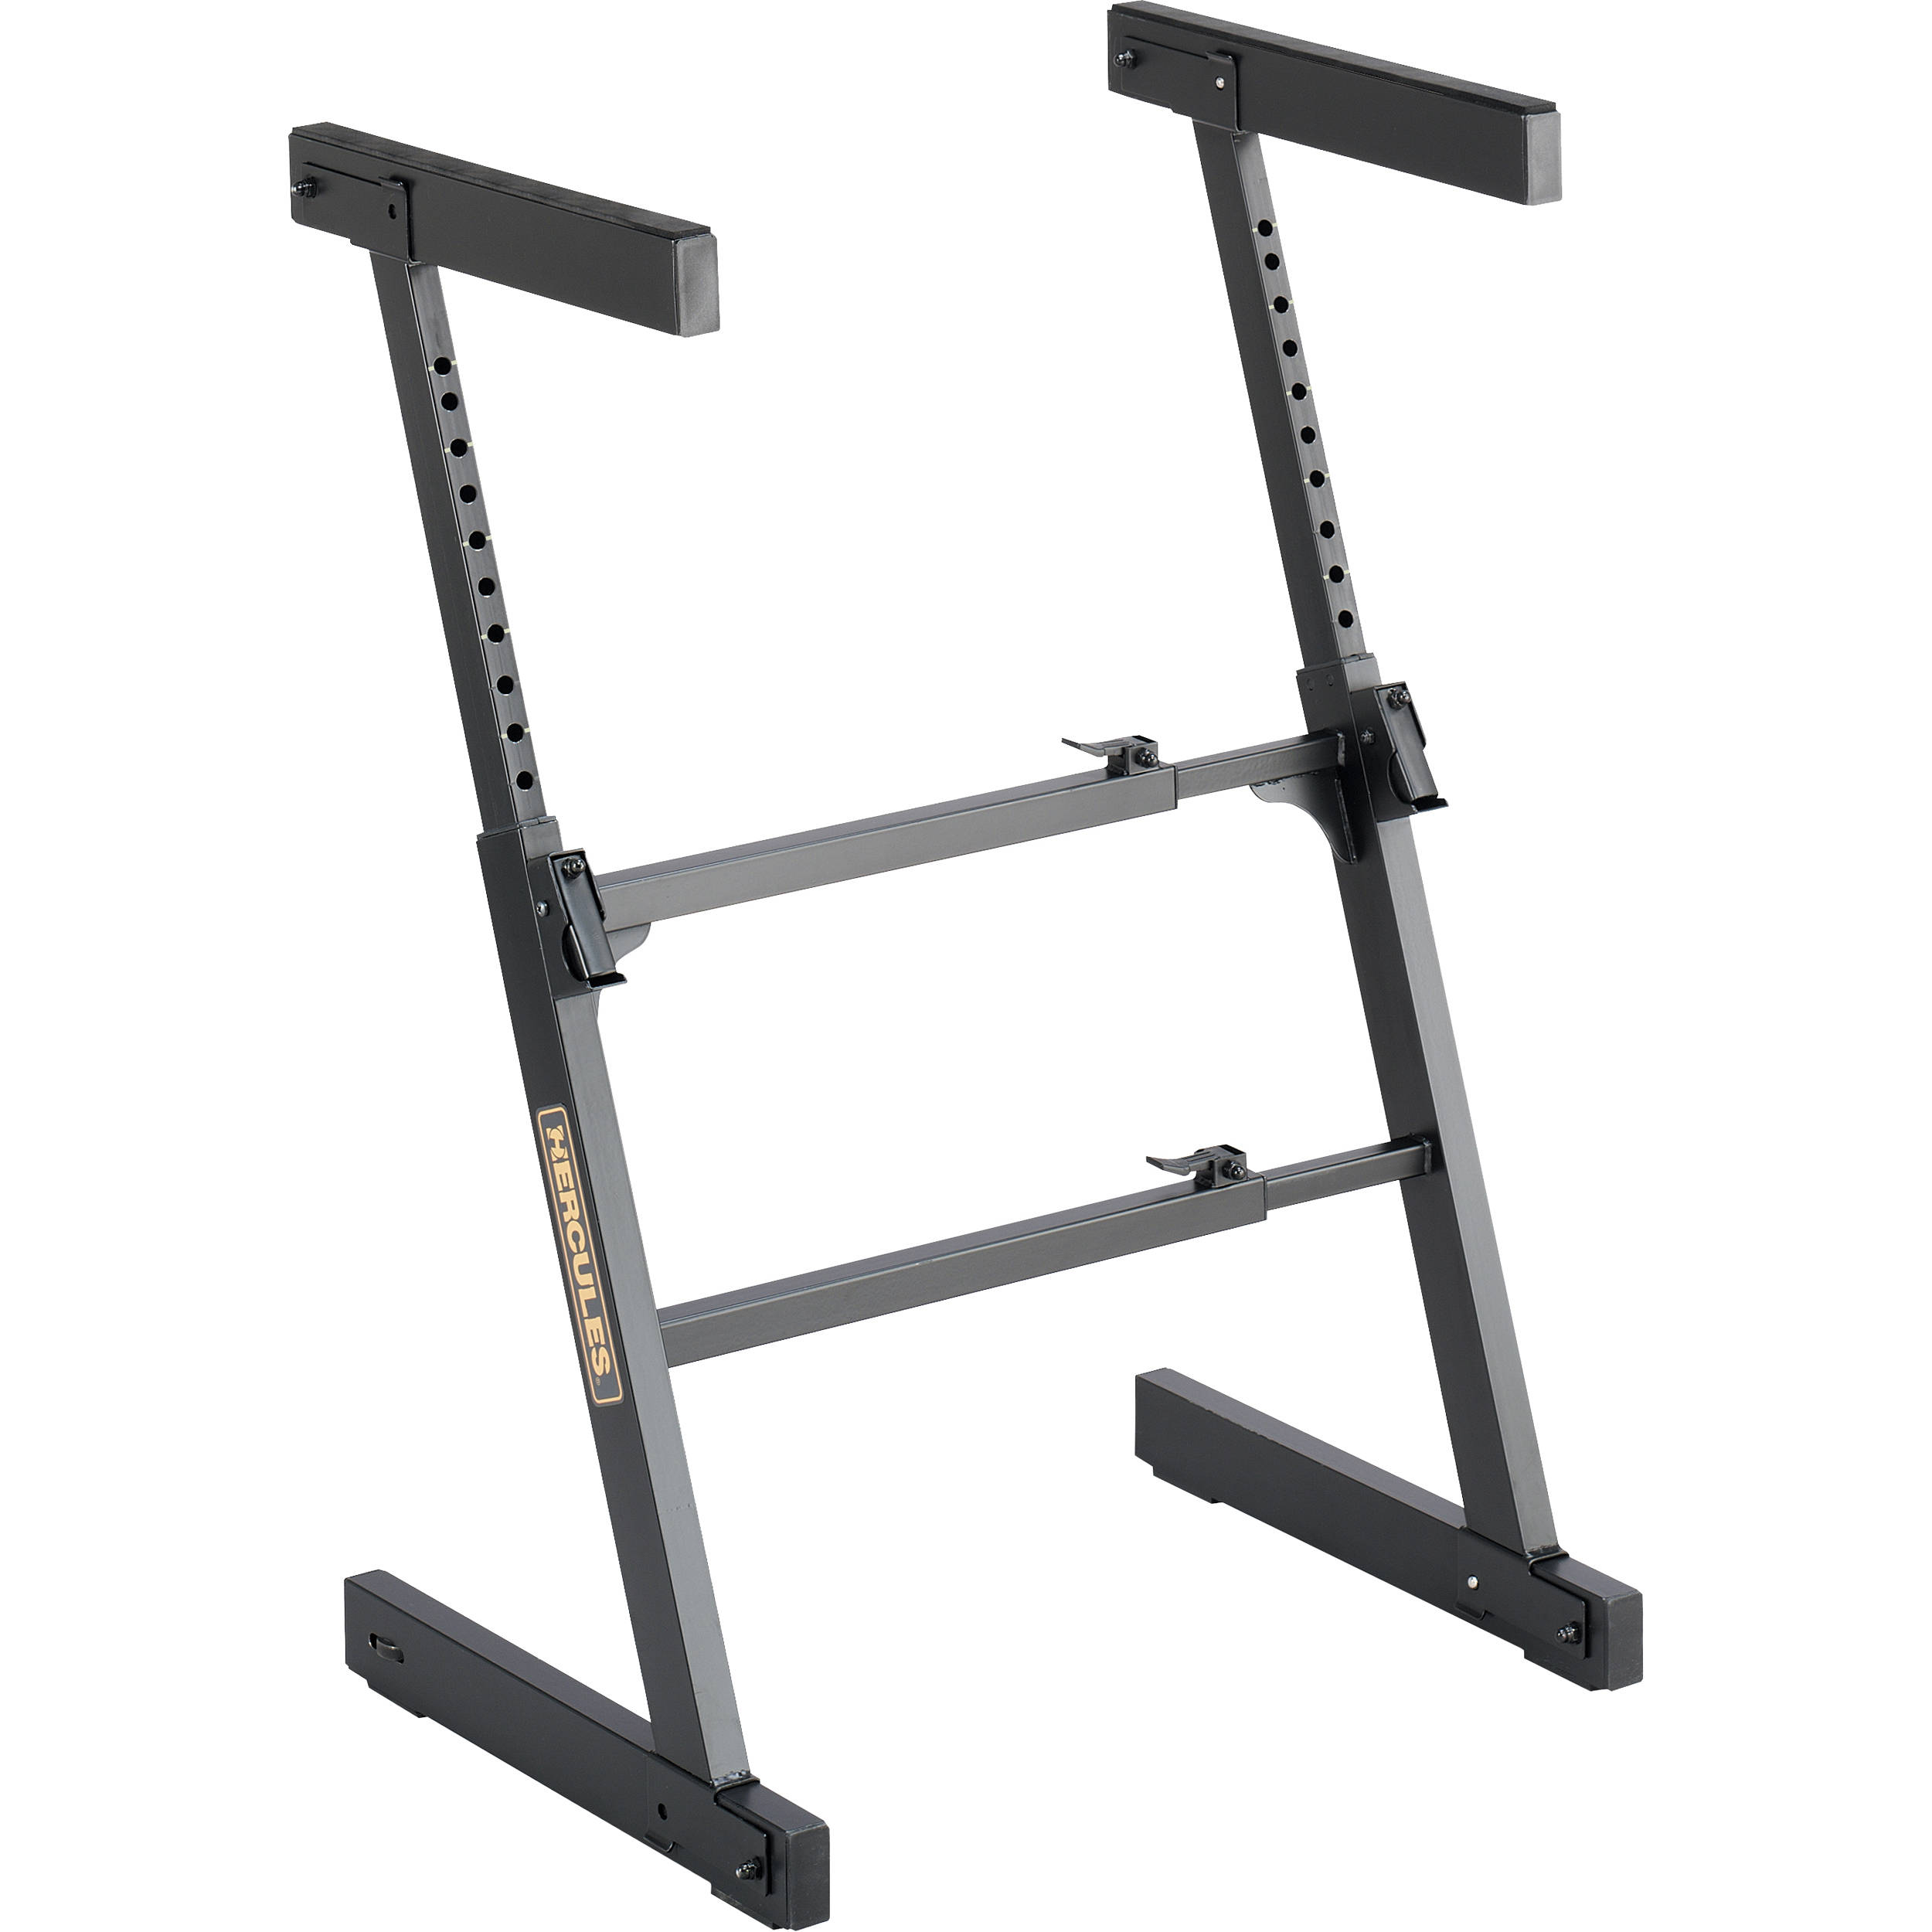 Keyboard Stand Designs : Hercules stands auto lock z style keyboard stand ks b h